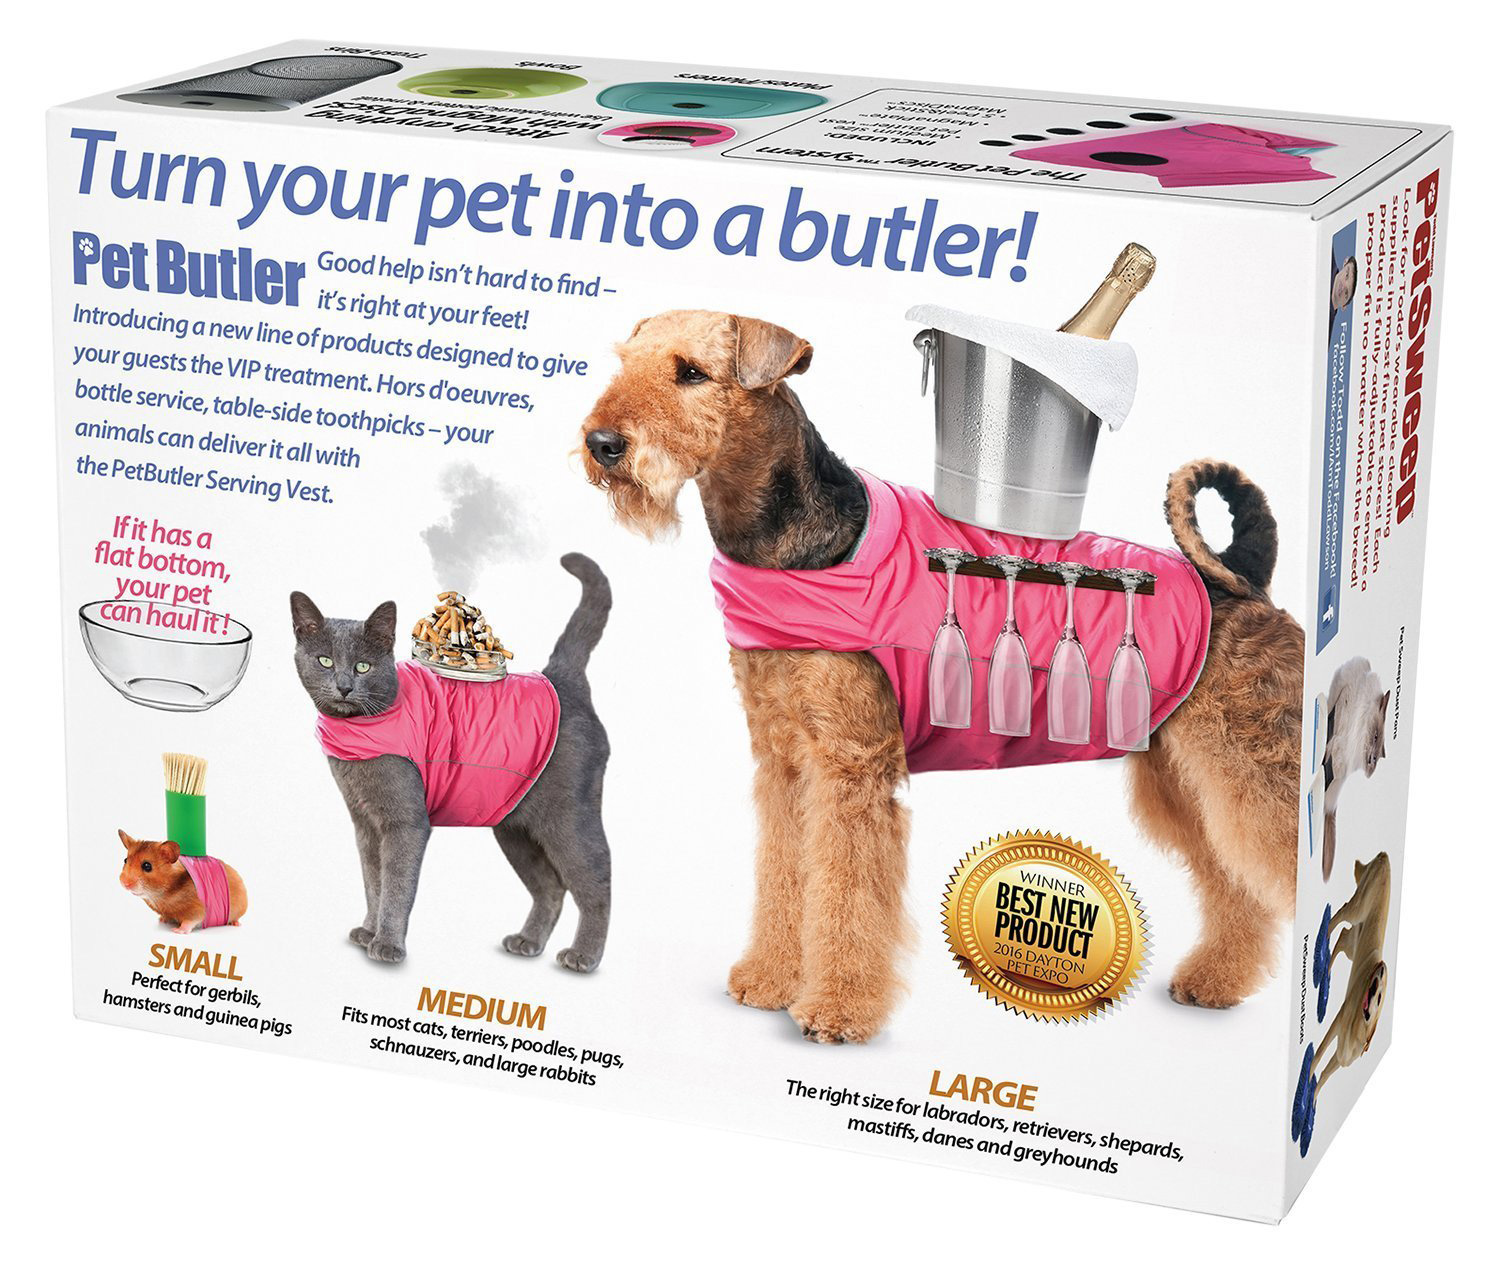 Prank-Pack-Pet-Butler—Standard-Size-Prank-Gift-Box–Turn-your-pet-into-a-butler